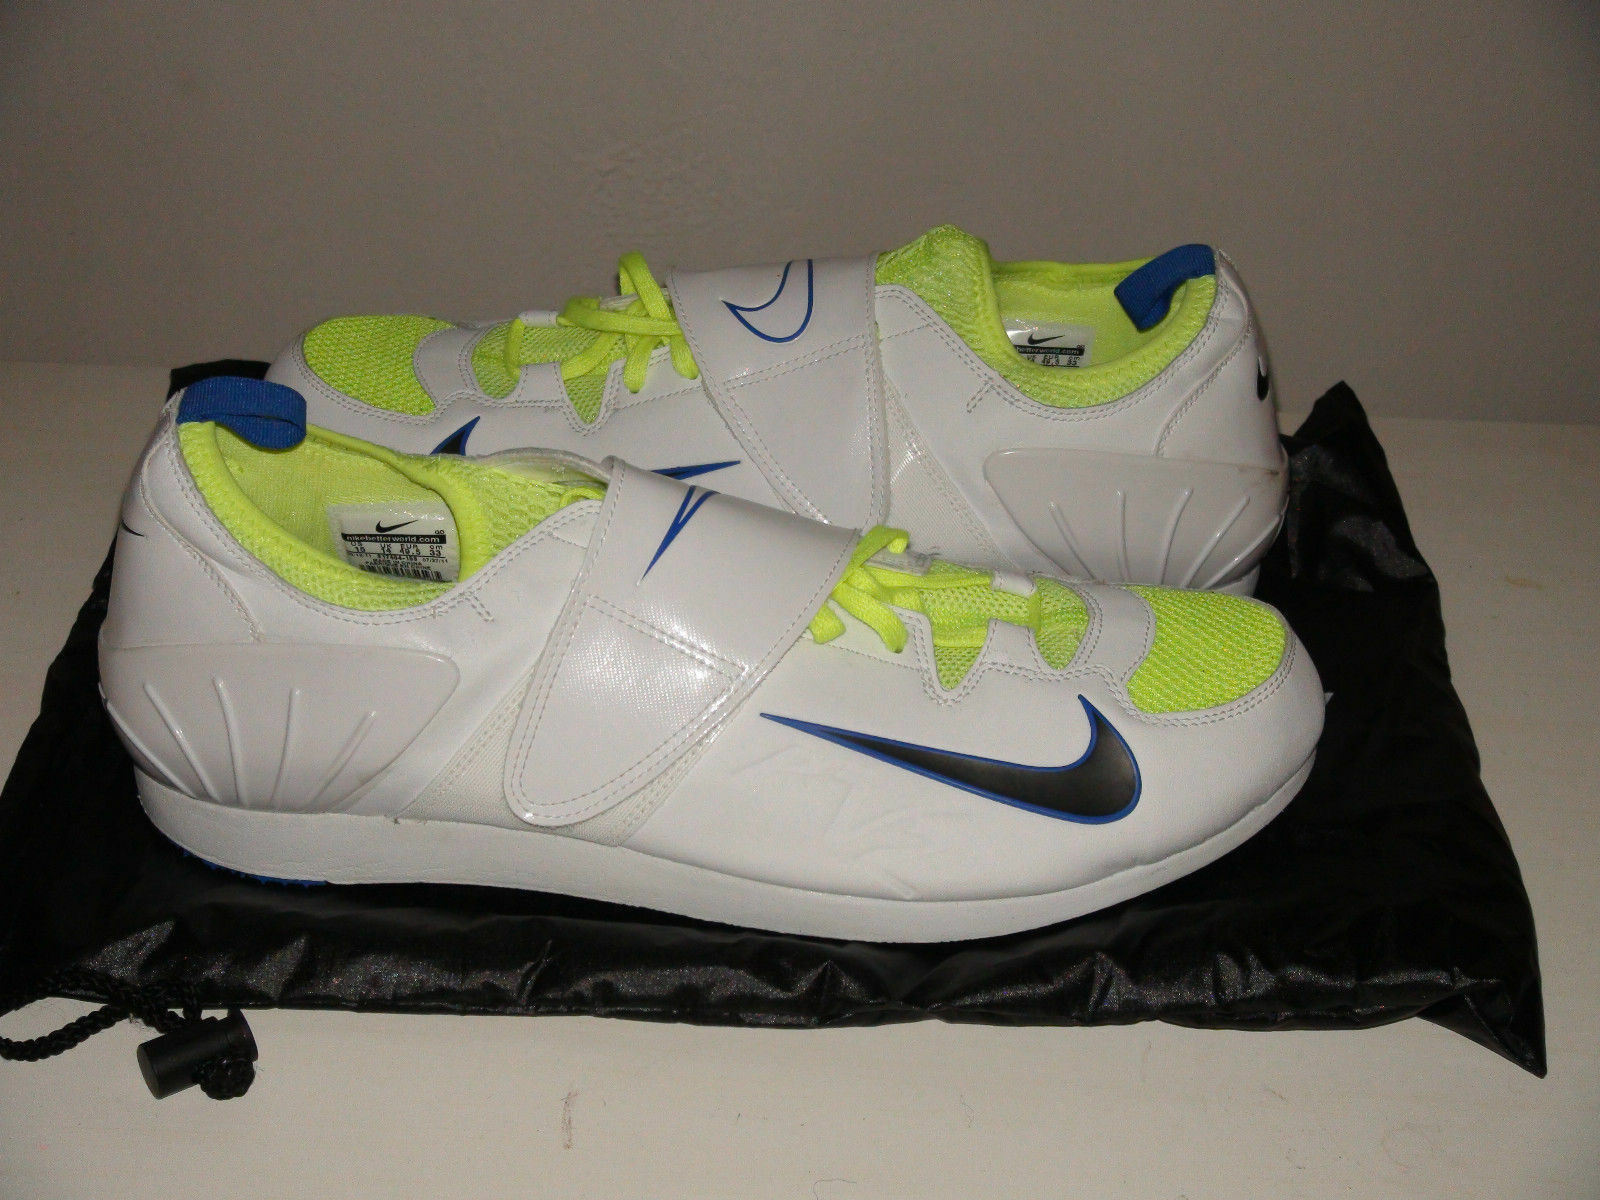 Nike 317404 Zoom Pv Pole Vault II PV2 Men's Track Field Spikes Shoes New 13